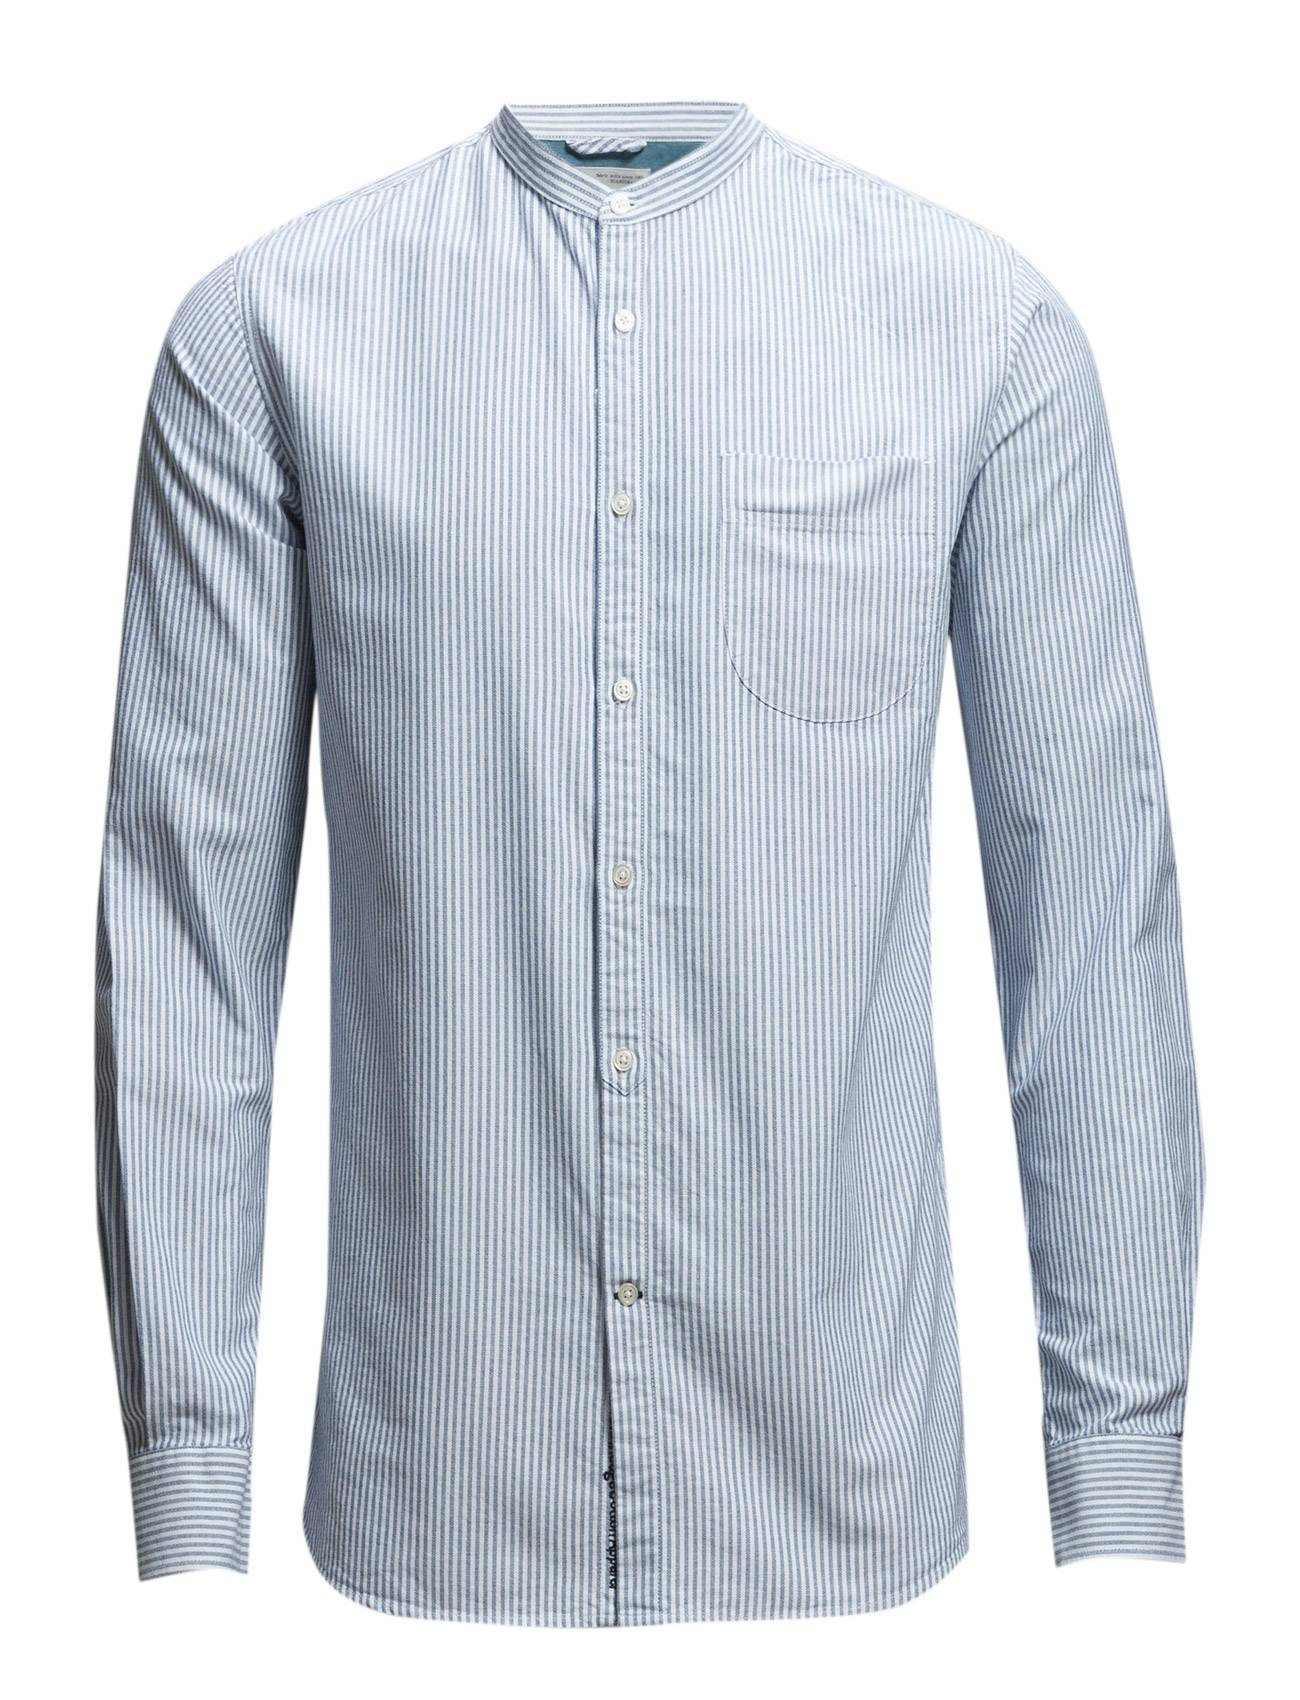 Knowledge Cotton Apparel Stand Collar Striped Shirt - Gots